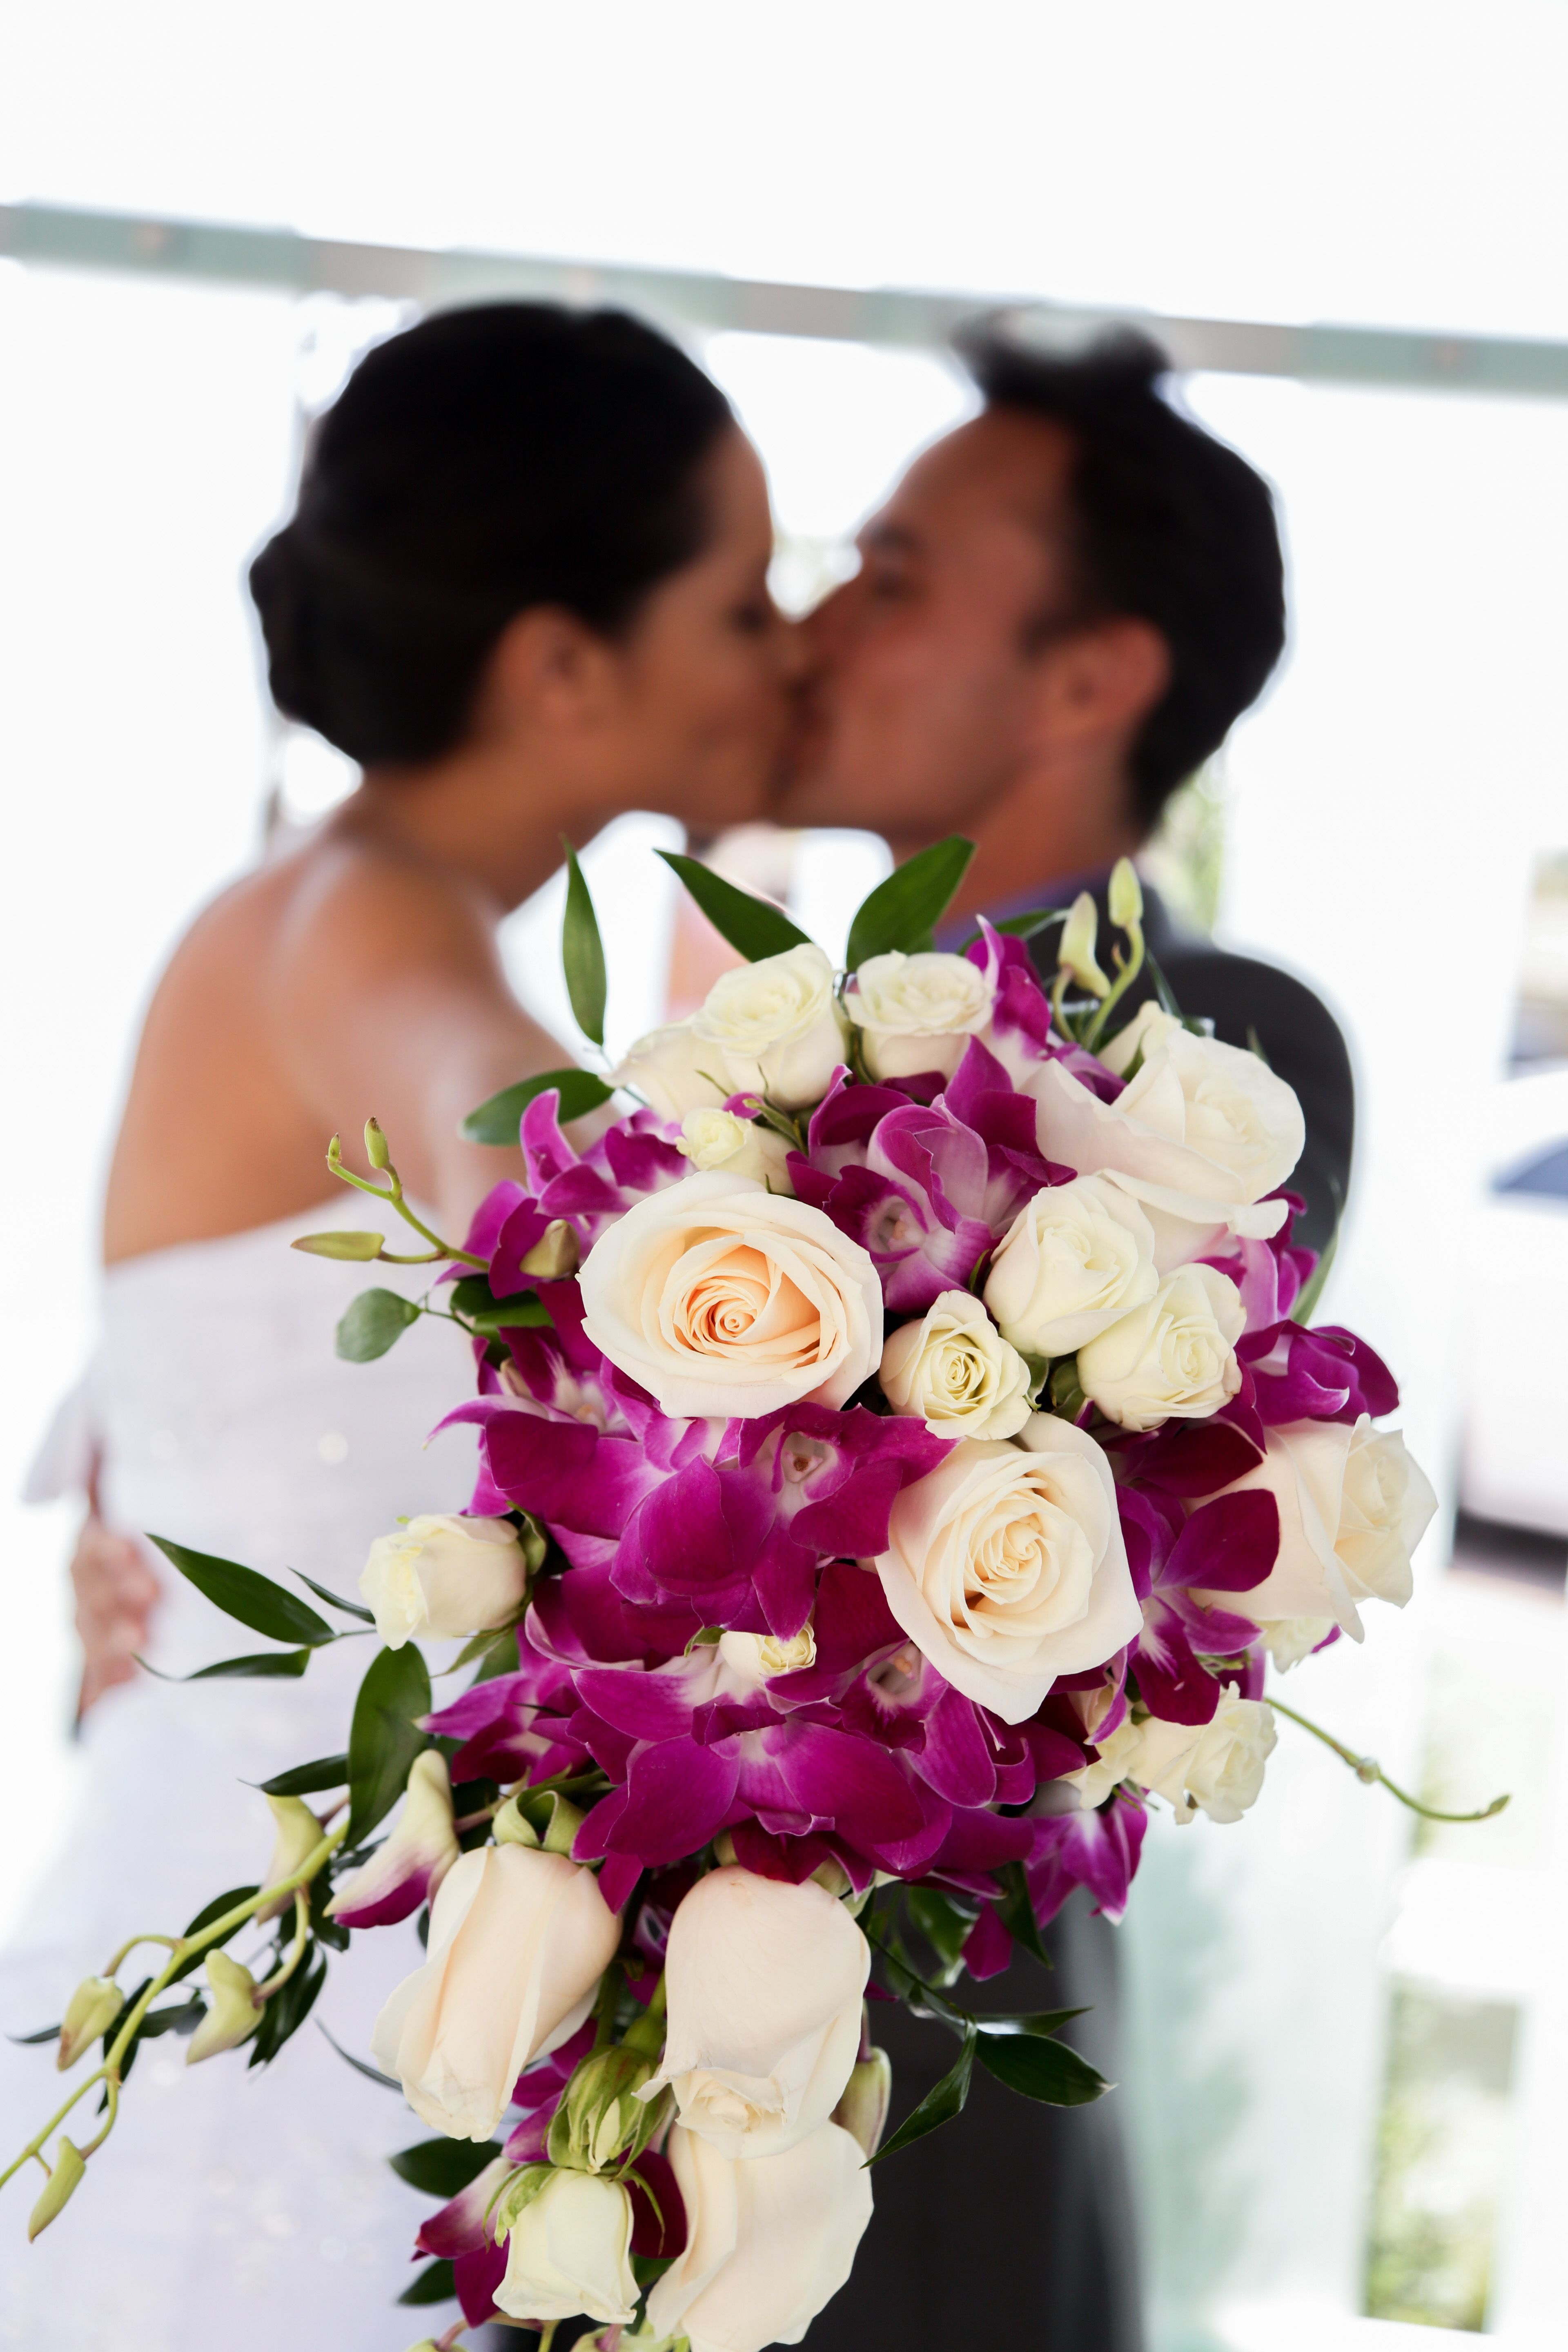 Purple Orchid With White Rose Bridal Bouquet Wedding Flower Ideas